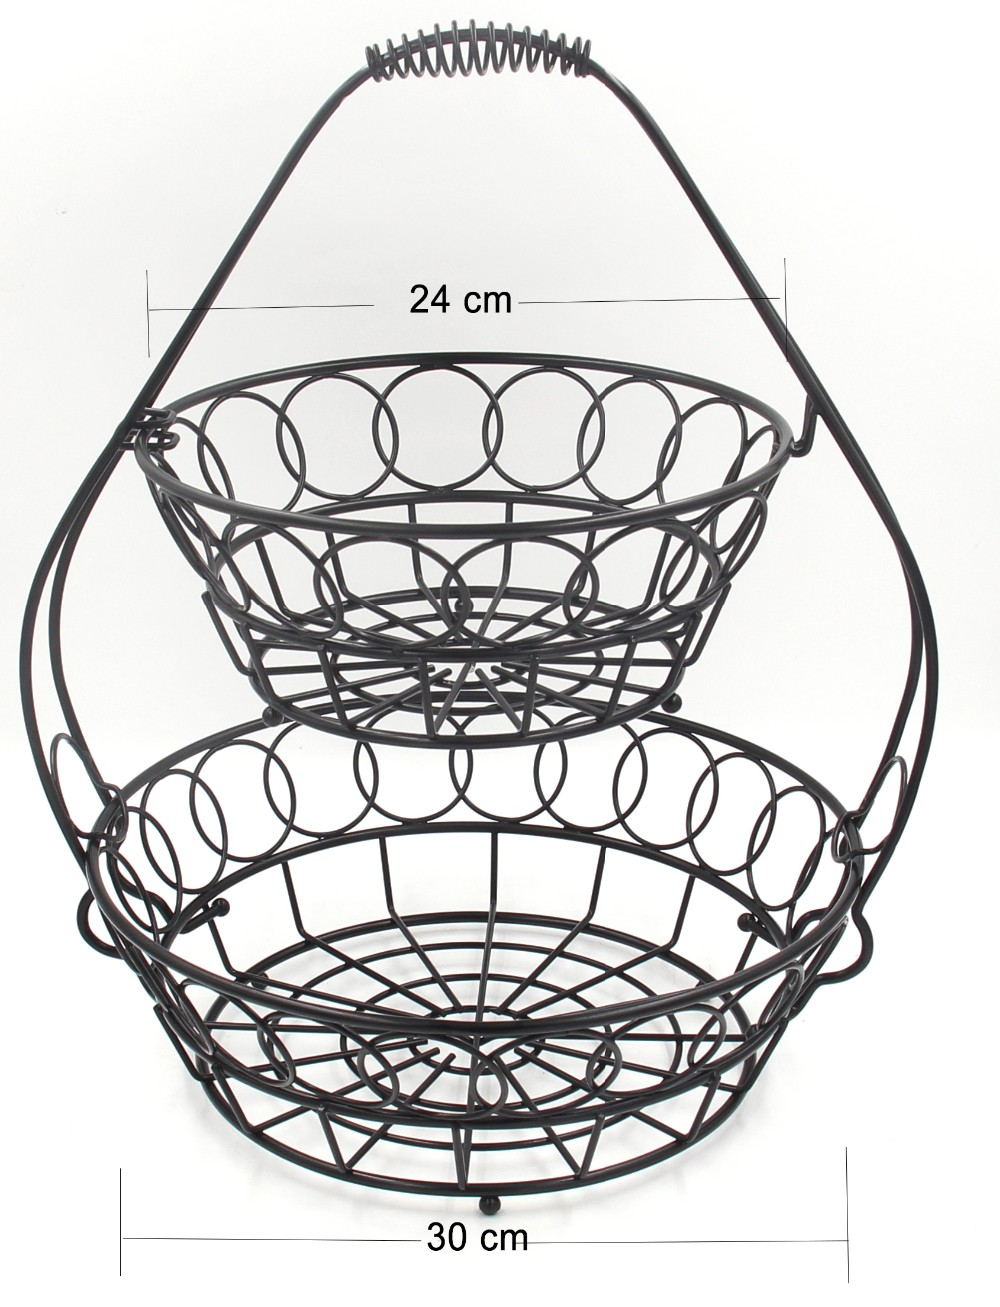 easypag kitchen home supply metal steel 2 tiers wire fruit basket Electrical Wire Clip Art easypag kitchen home supply metal steel 2 tiers wire fruit basket